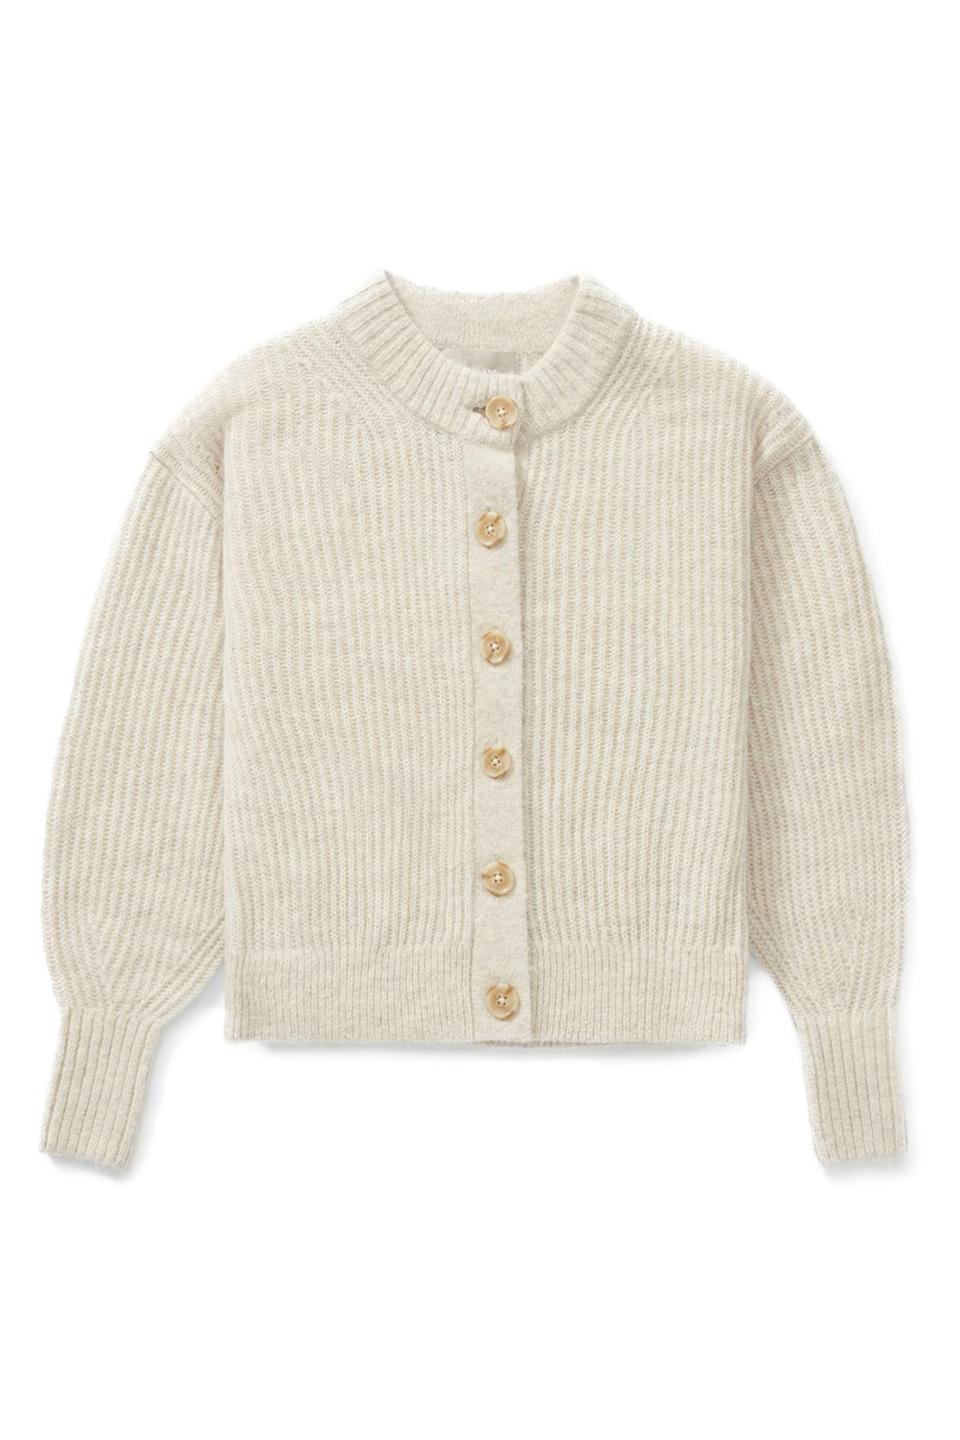 """<p><strong>everlane</strong></p><p>everlane.com</p><p><strong>$110.00</strong></p><p><a href=""""https://go.redirectingat.com?id=74968X1596630&url=https%3A%2F%2Fwww.everlane.com%2Fproducts%2Fwomens-cropped-alpaca-cardigan-almond&sref=https%3A%2F%2Fwww.elle.com%2Ffashion%2Fshopping%2Fg33955592%2Fgifts-for-book-lovers%2F"""" rel=""""nofollow noopener"""" target=""""_blank"""" data-ylk=""""slk:Shop Now"""" class=""""link rapid-noclick-resp"""">Shop Now</a></p><p>Fall is coming. </p>"""